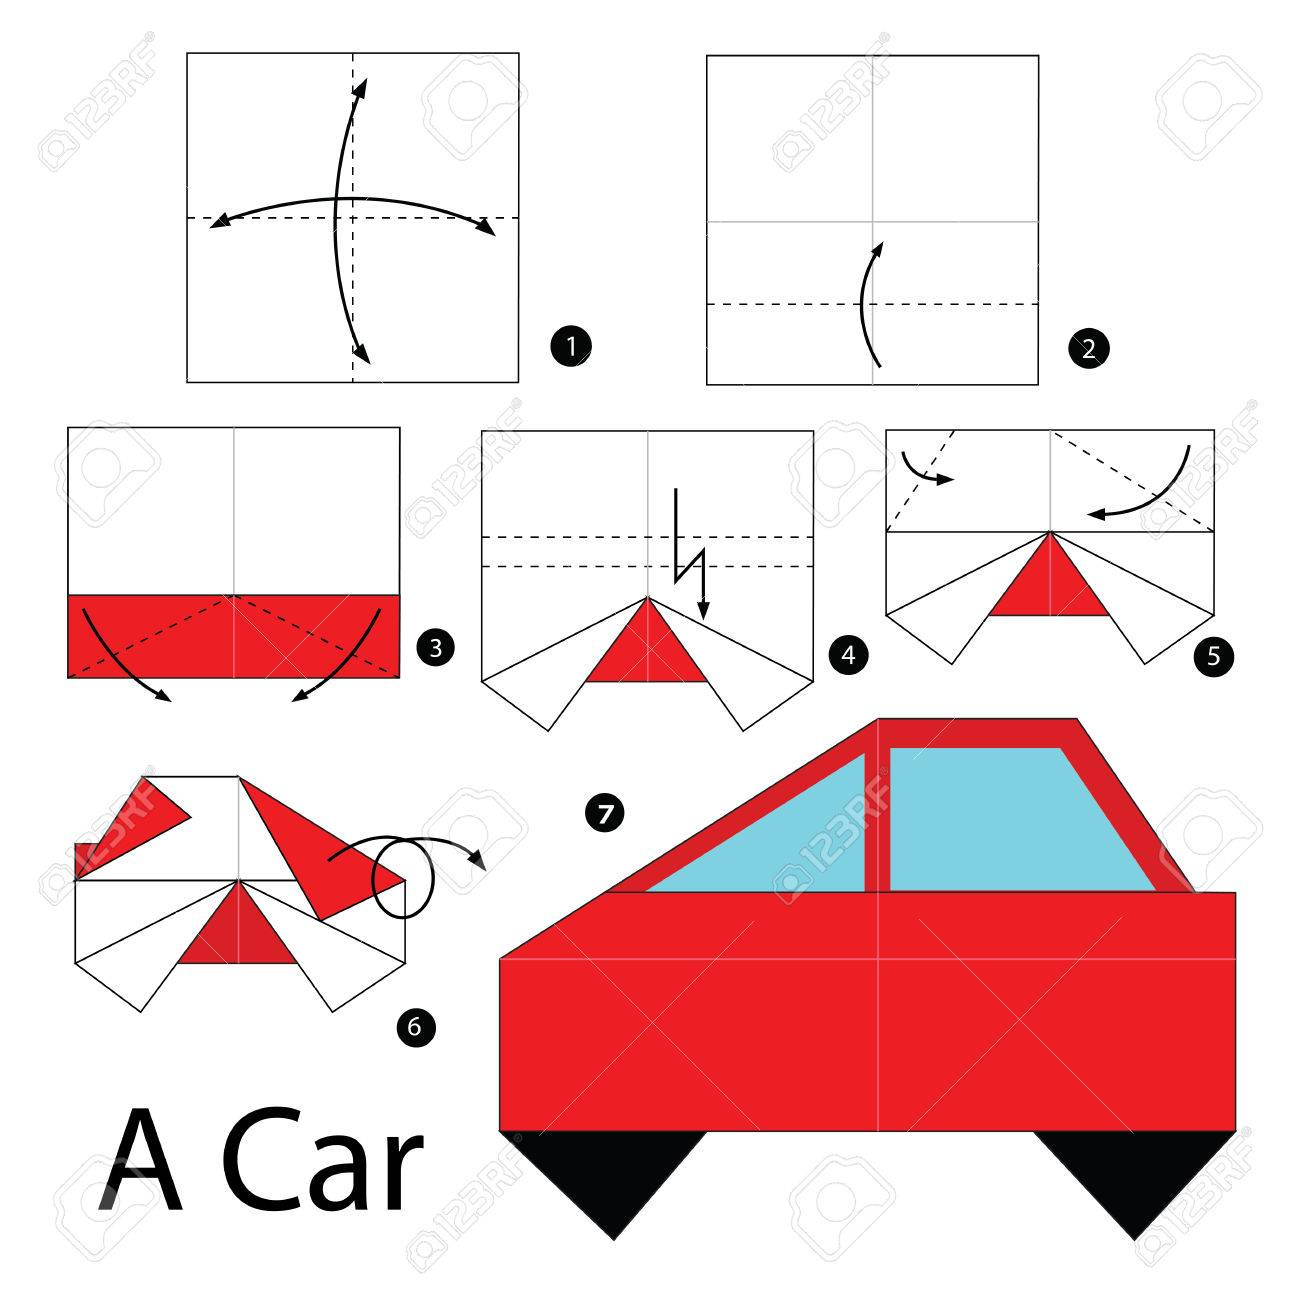 Step by step instructions how to make origami a car royalty free step by step instructions how to make origami a car stock vector 52881879 jeuxipadfo Choice Image